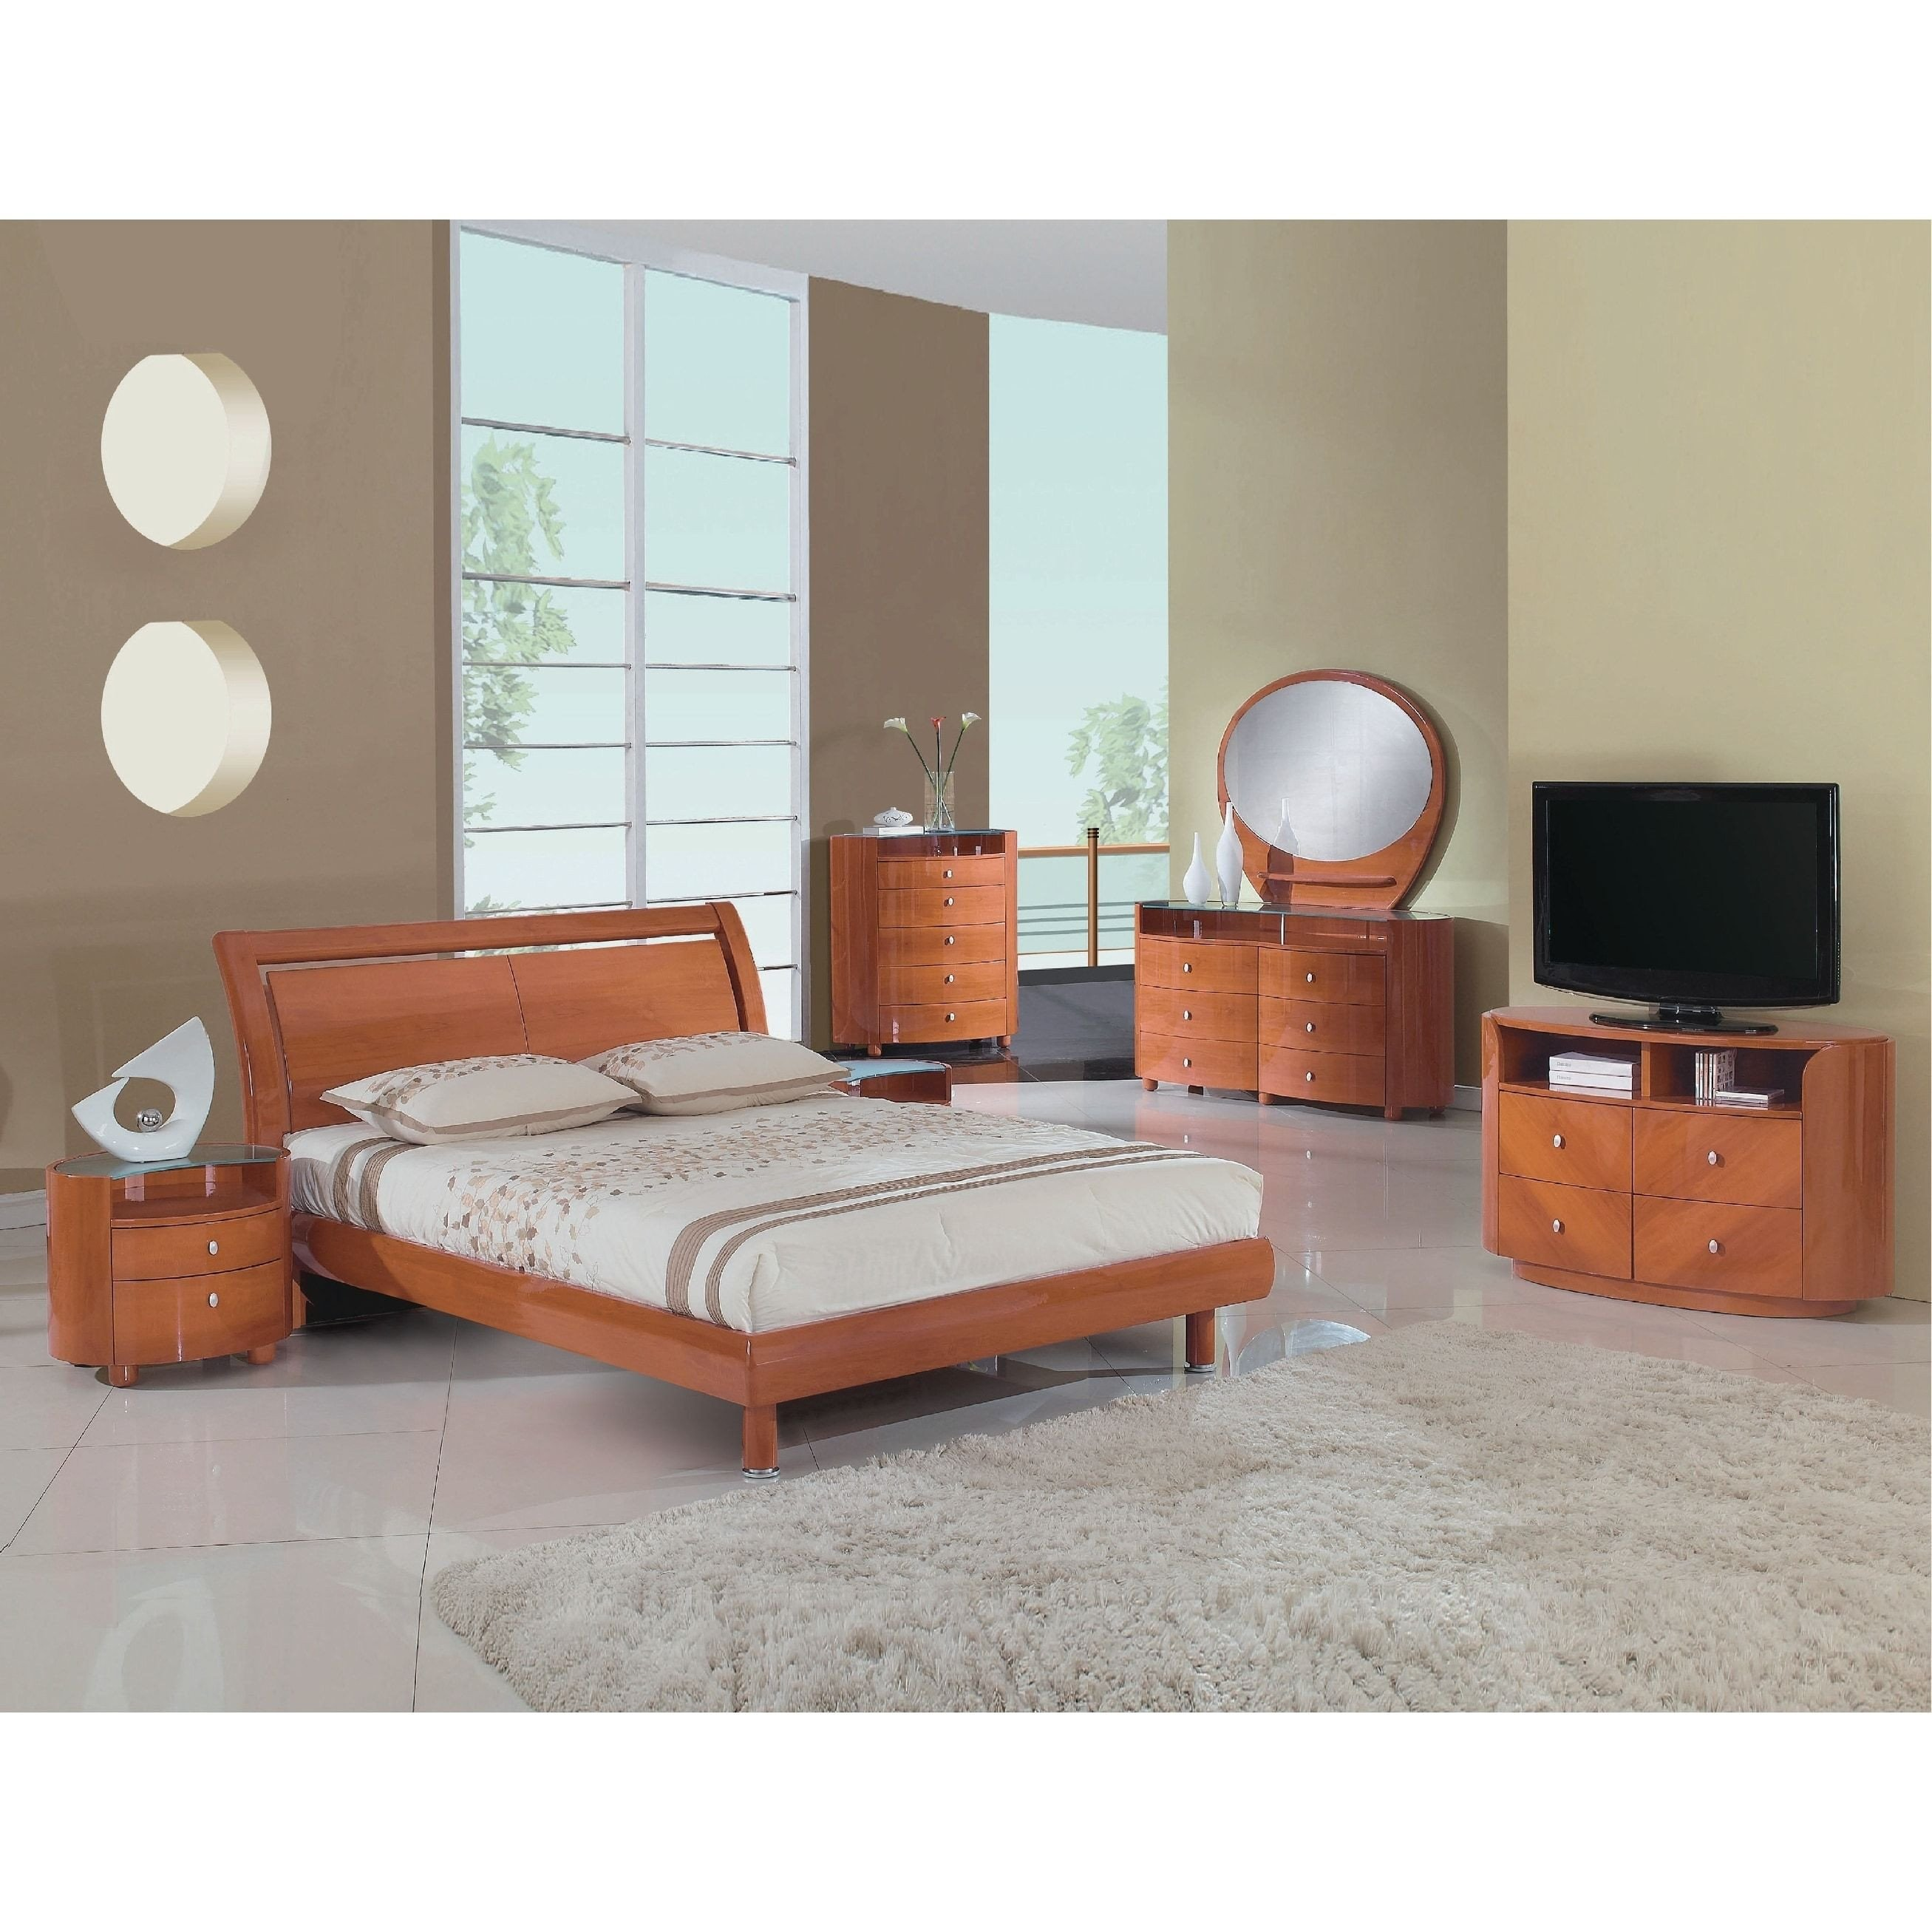 Cheap Bedroom Set Online Unique Line Shopping Bedding Furniture Electronics Jewelry